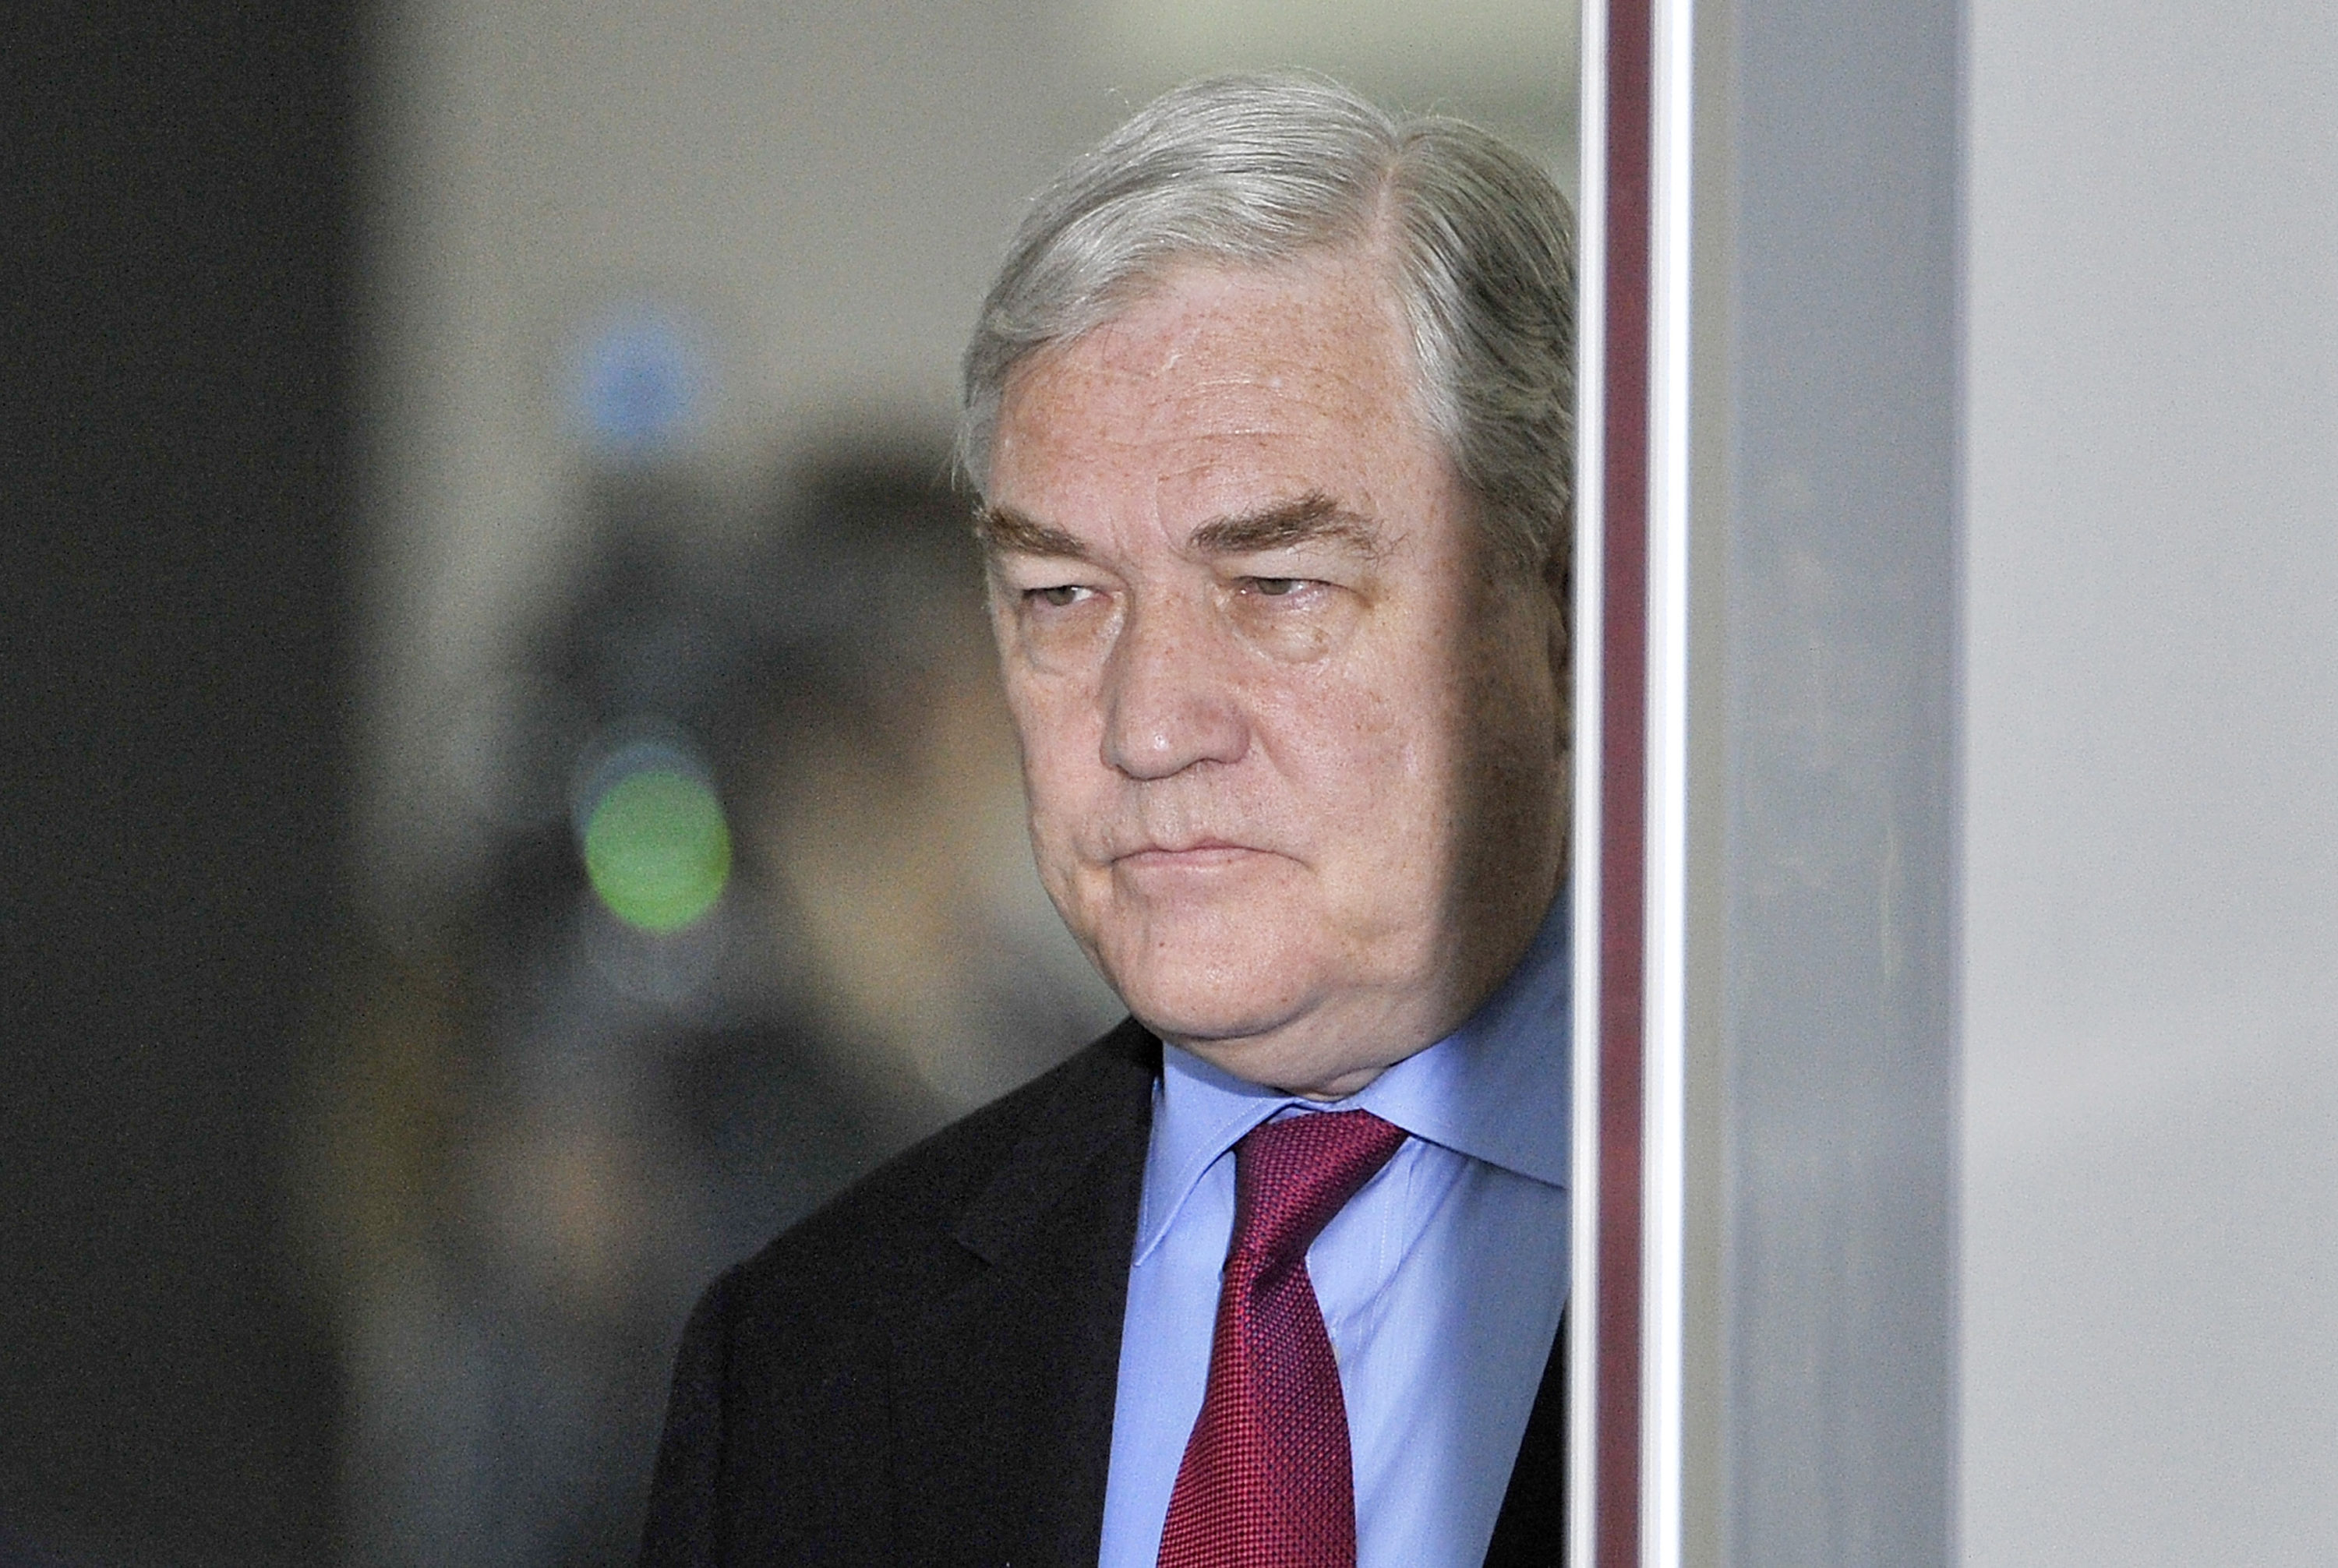 The Wall Street Journal's Innocence Project: the Case of Conrad Black